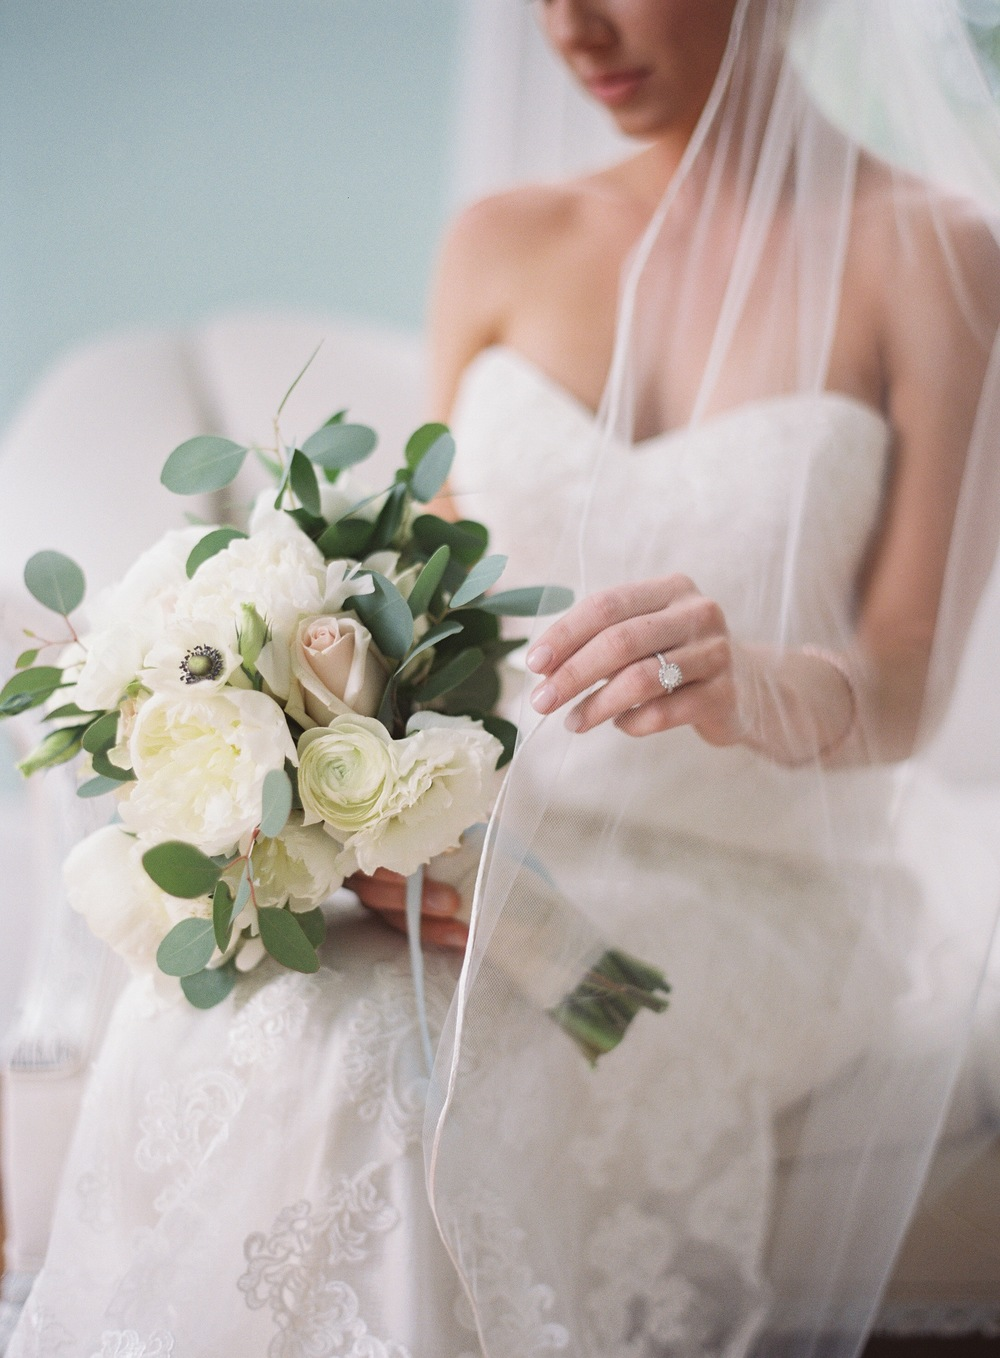 05. Indoor Bridal photo with Bouquet.jpeg